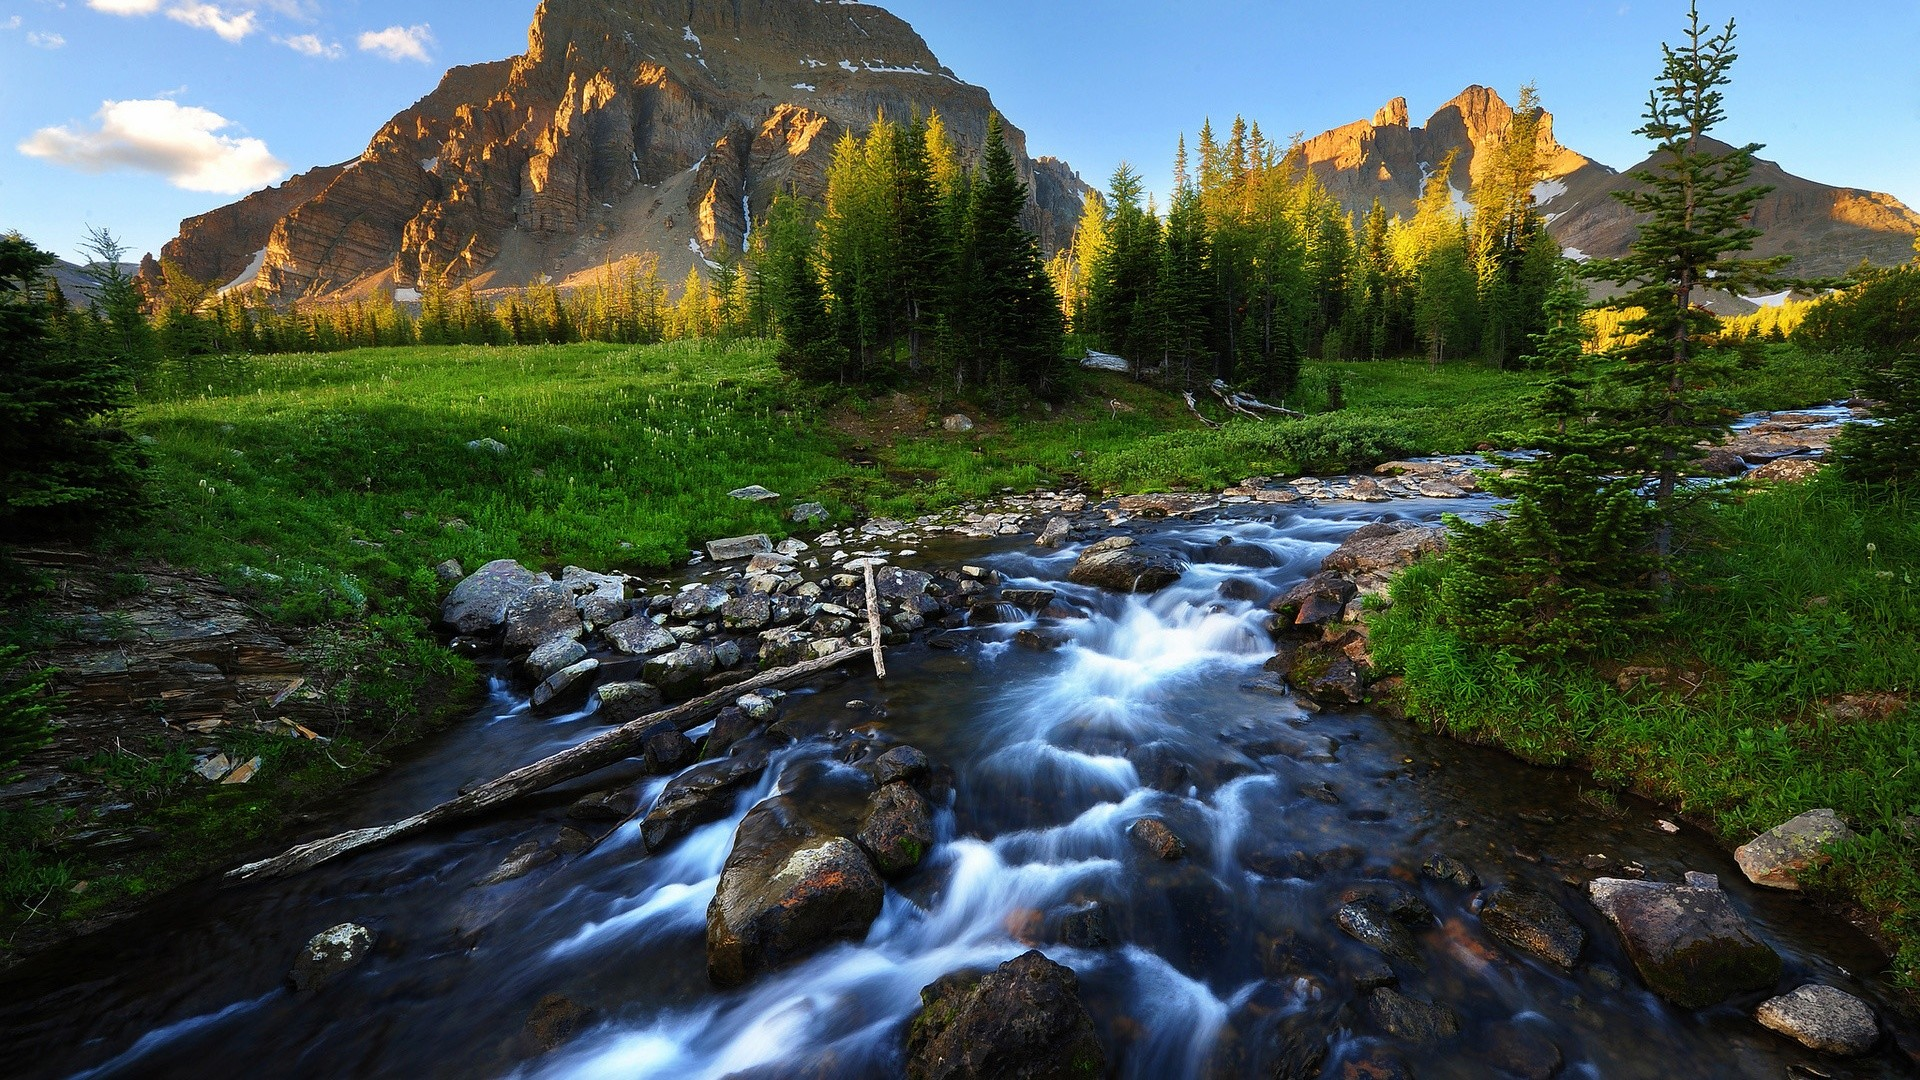 Mountain River Hd Wallpaper: Landscape HD Wallpapers 1080p (81+ Images